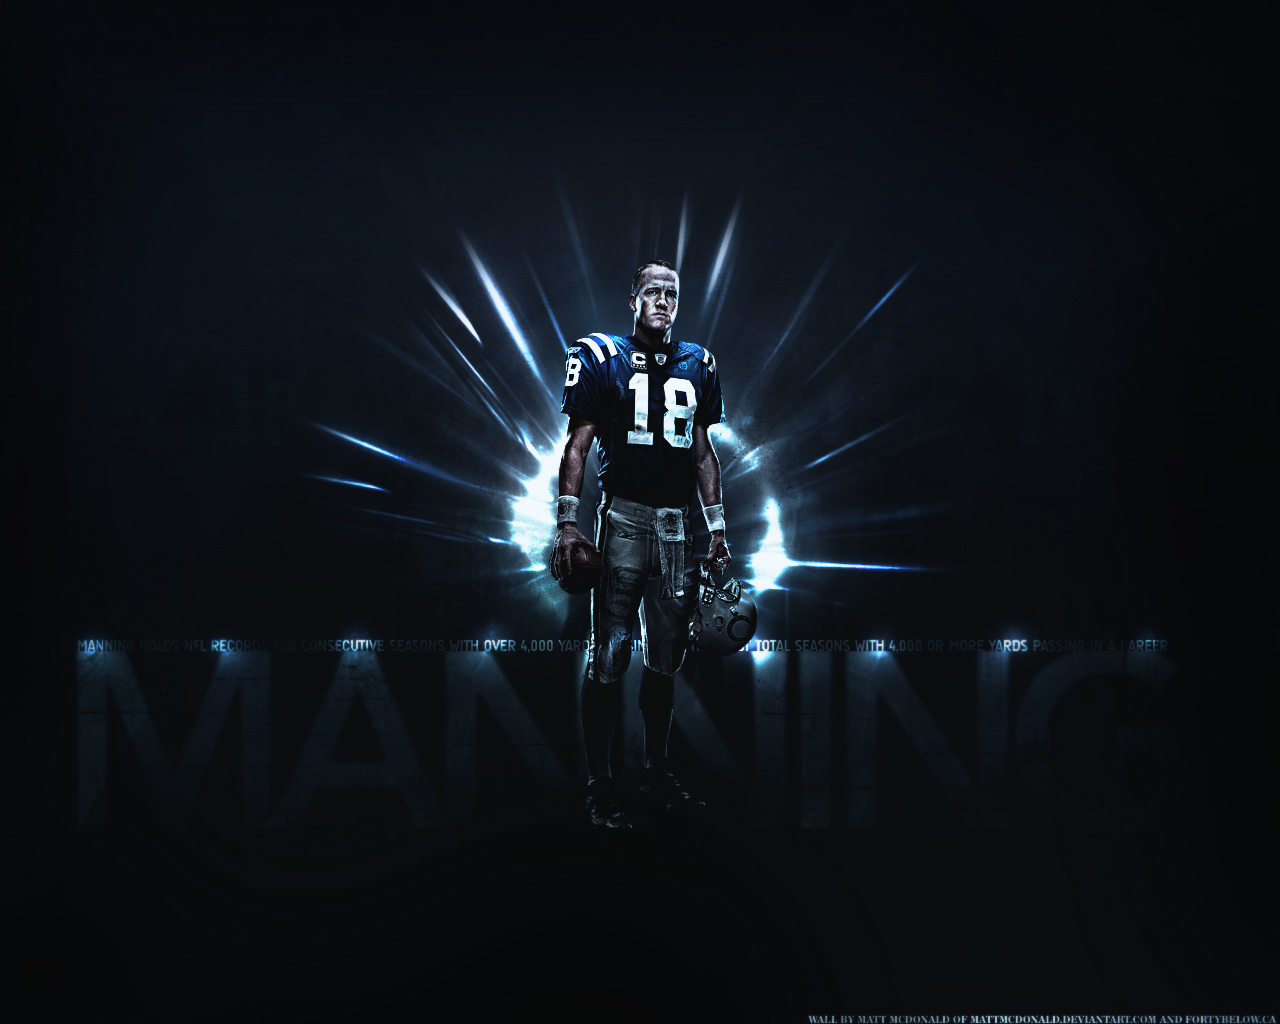 peyton manning come on HD Wallpaper